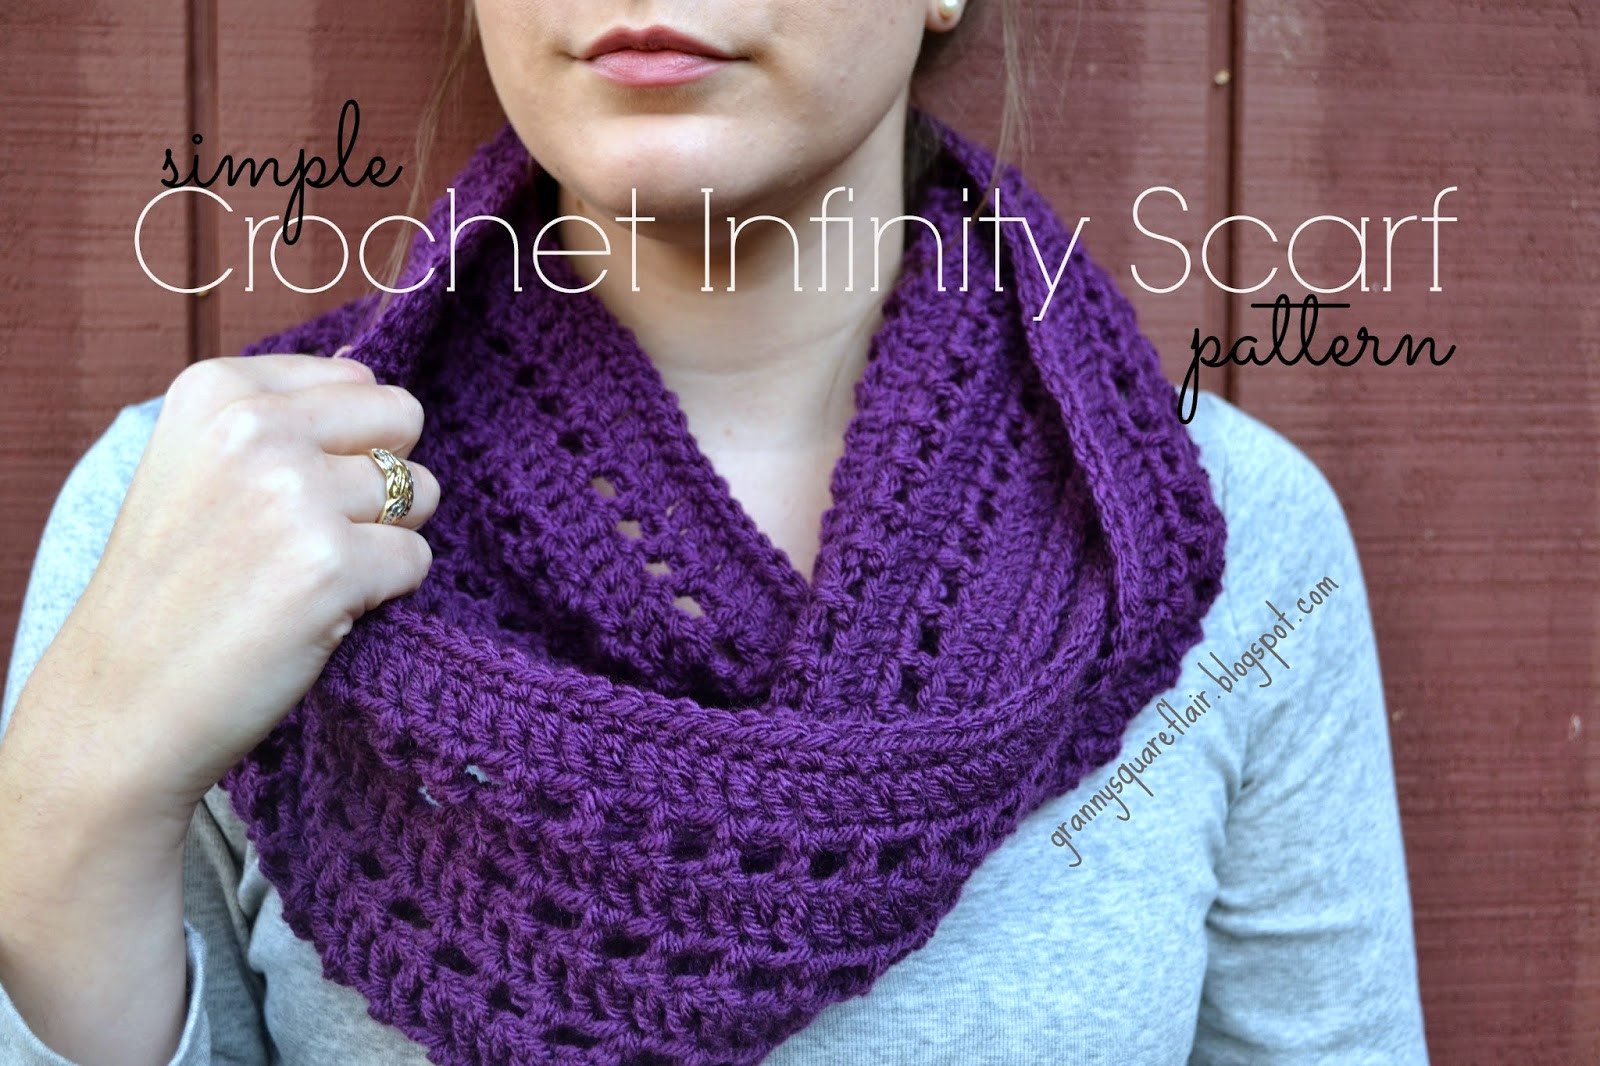 Crochet Infinity Scarves Beautiful Granny Square Flair Simple Crochet Infinity Scarf Patteren Of New 44 Photos Crochet Infinity Scarves